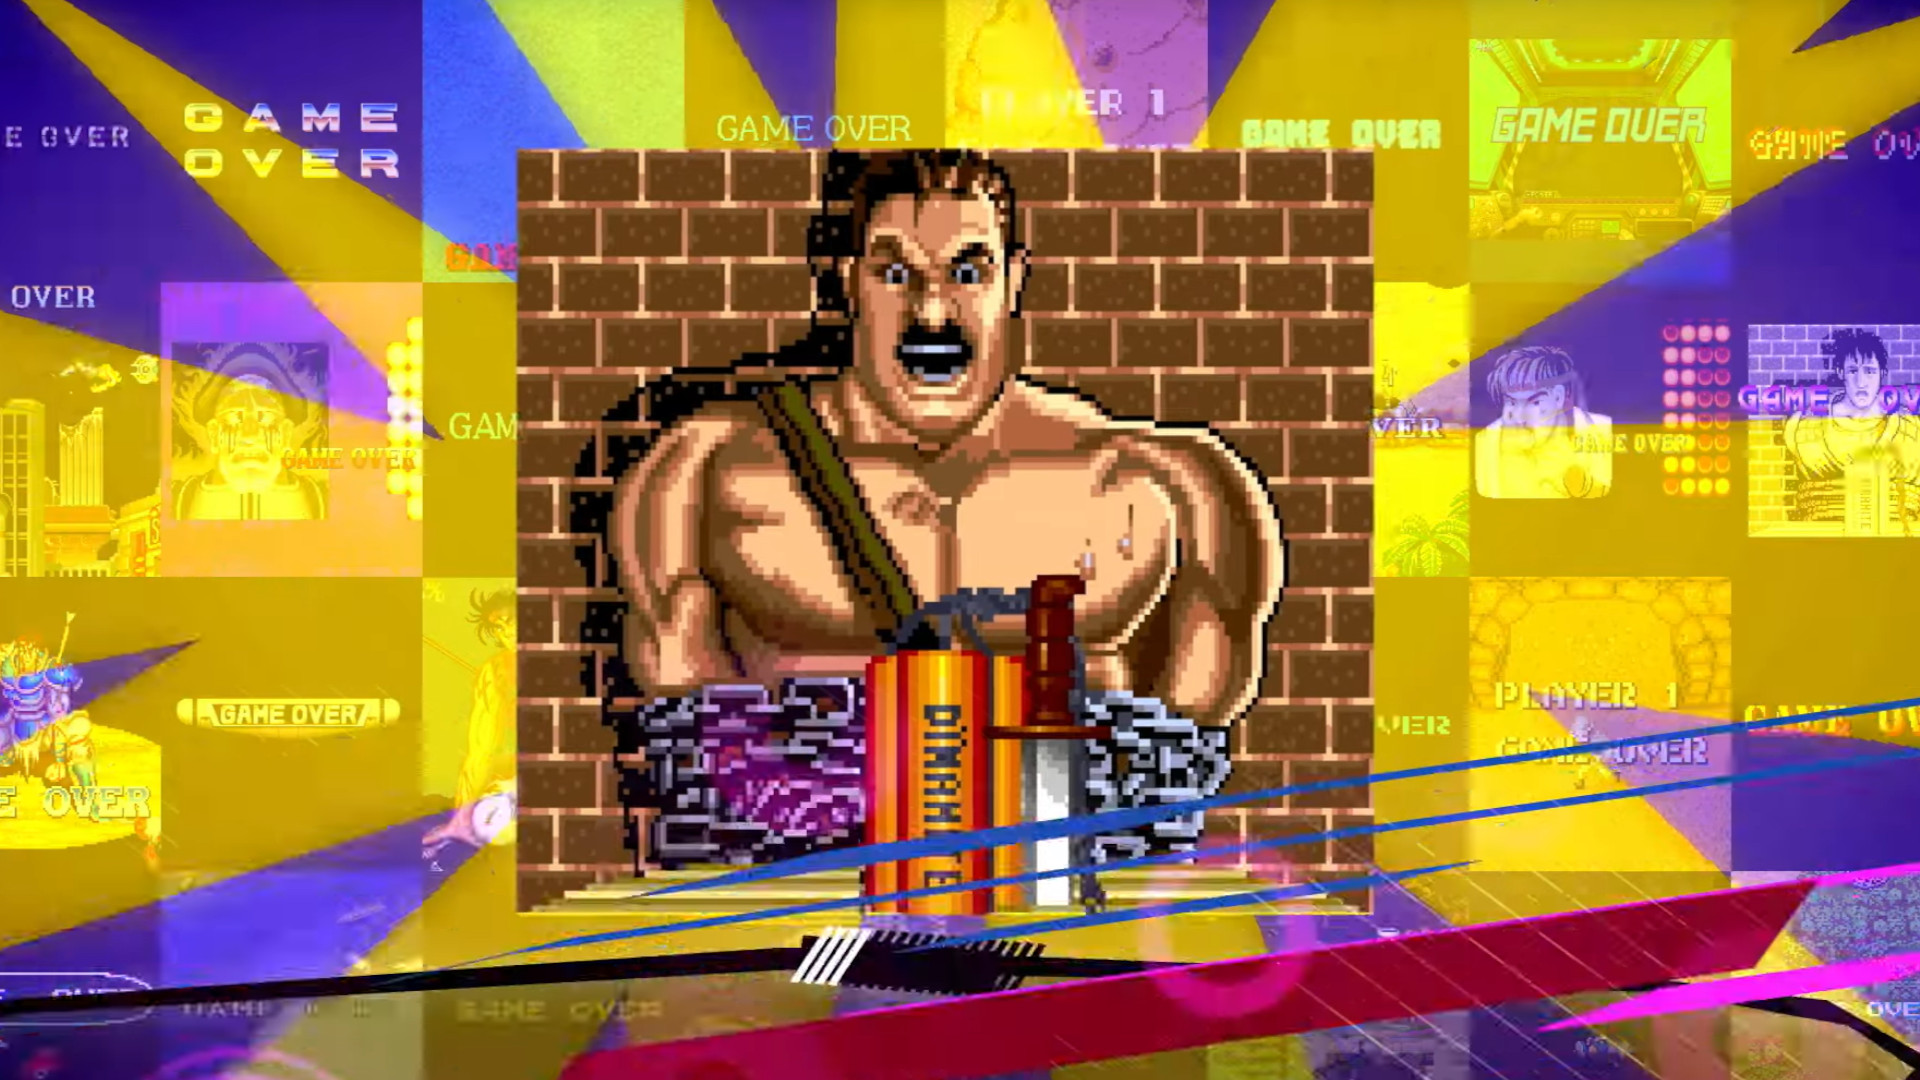 Capcom's bringing its arcade emulation collection to PC, and charging $1 for a cheat